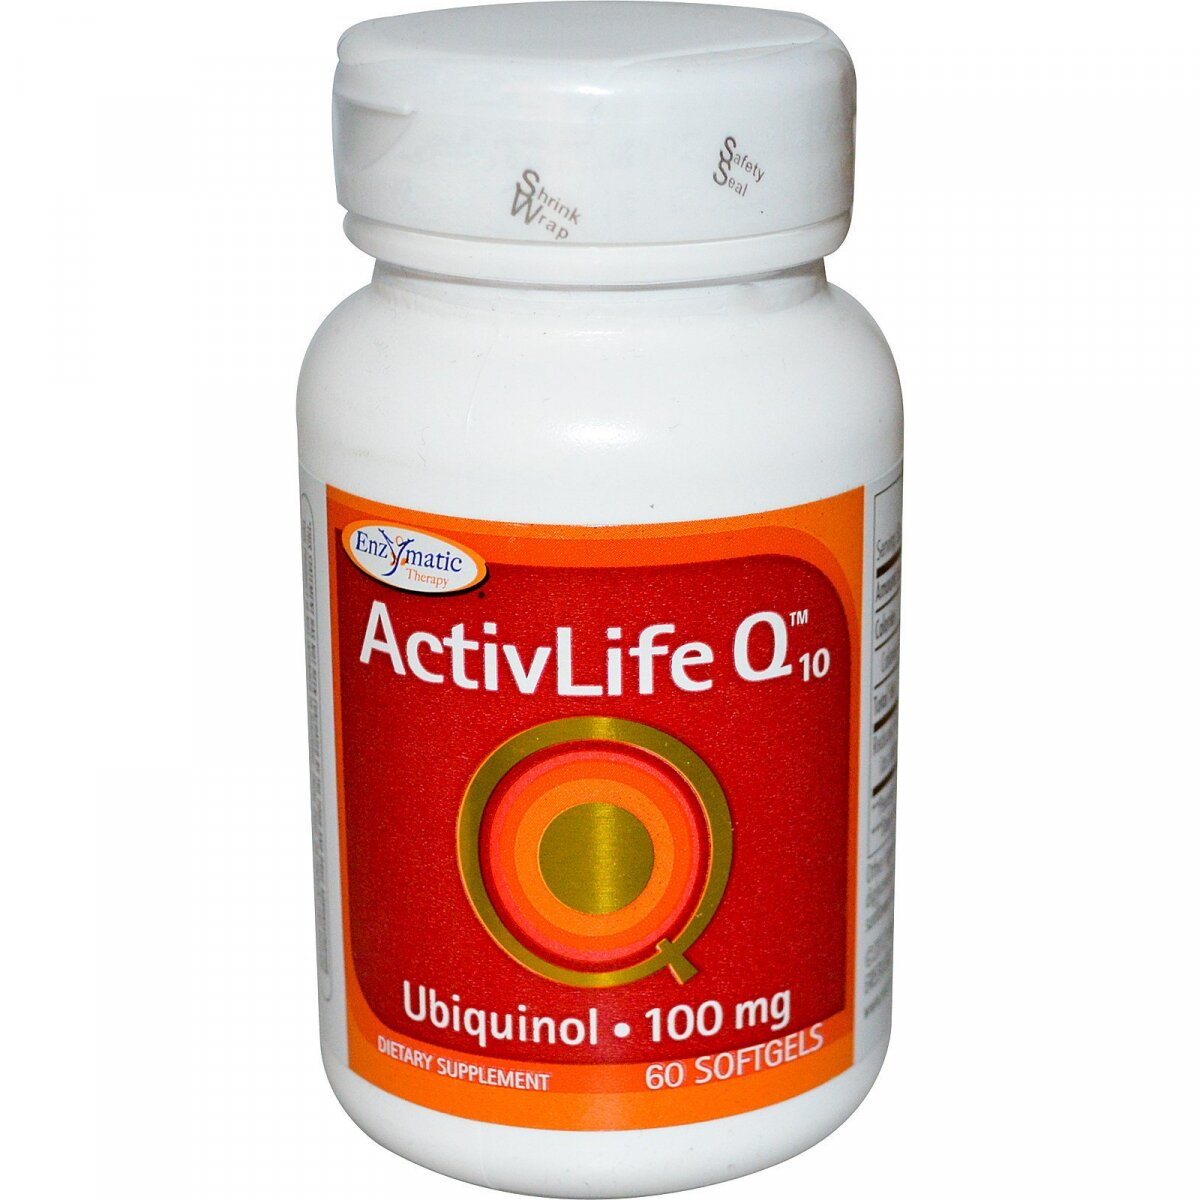 Убихинол, ActivLife Q10, Enzymatic Therapy (Nature's Way), 100 мг, 60 гелевых капсул